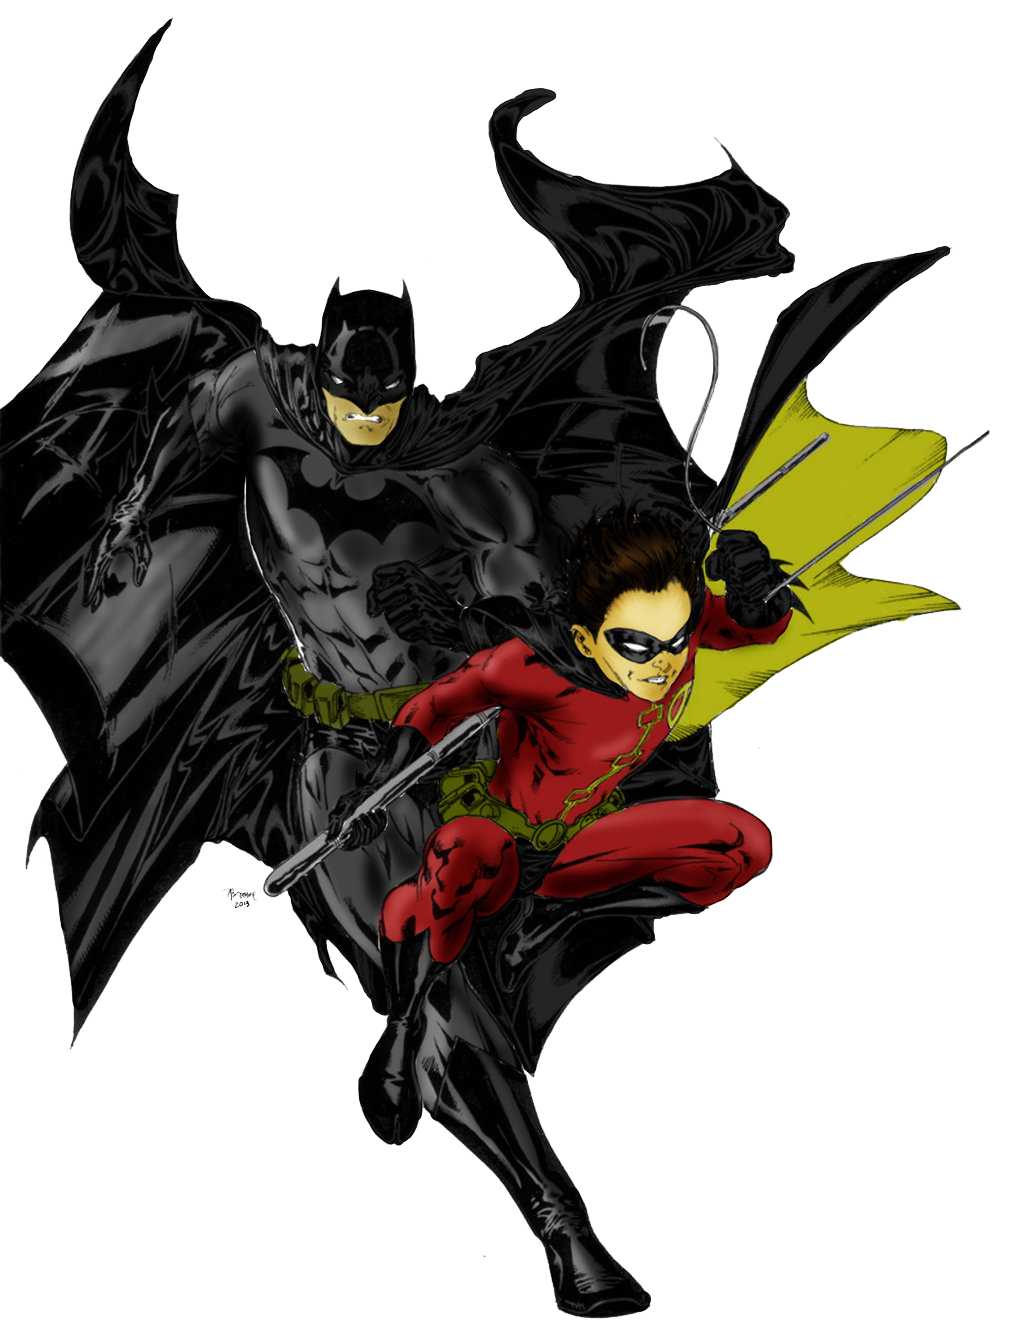 Batman And Robin File PNG Image